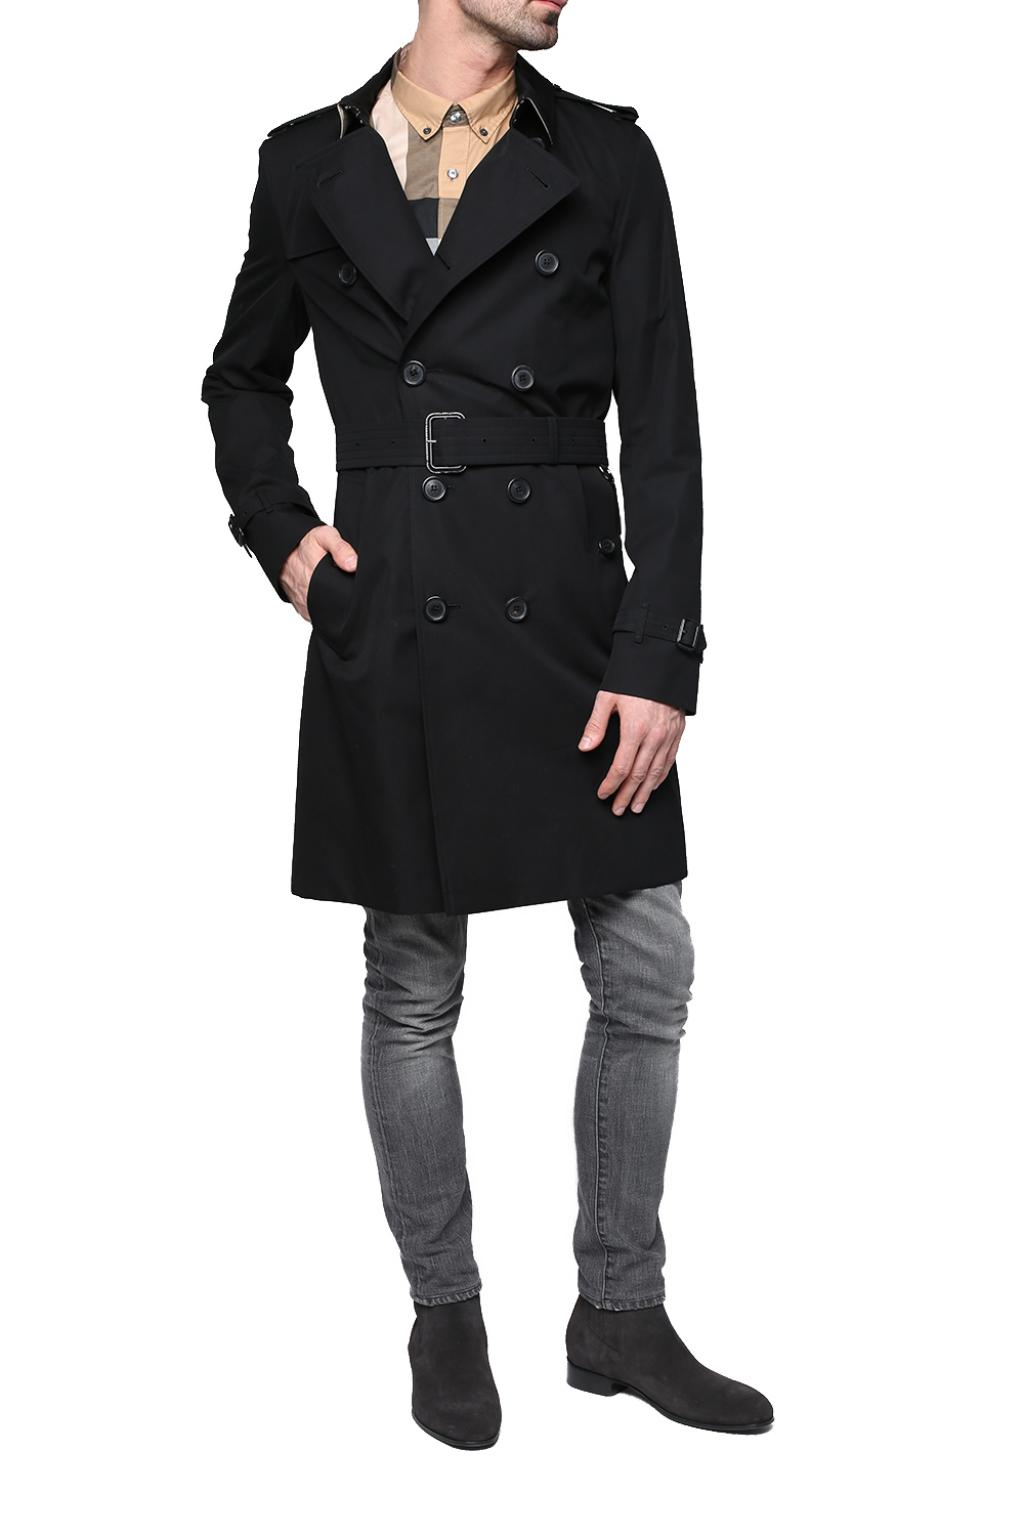 Burberry 'Sandringham' double-breasted trench coat